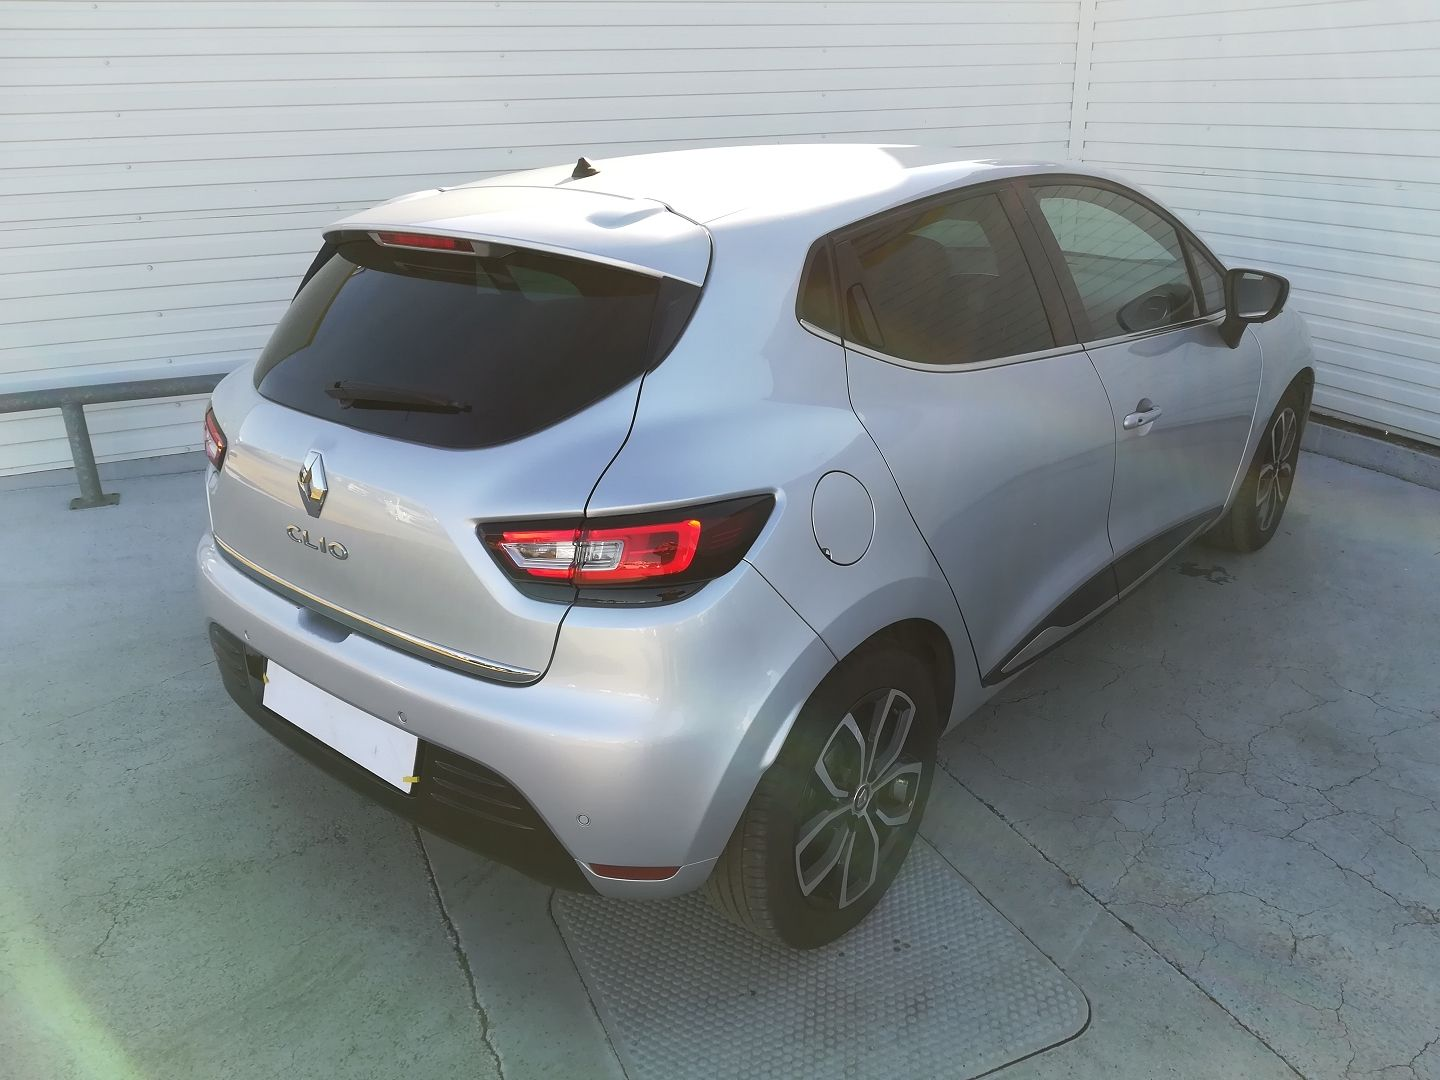 RENAULT CLIO IV 0.9 TCE 90CH ENERGY INTENS 5P EURO6C